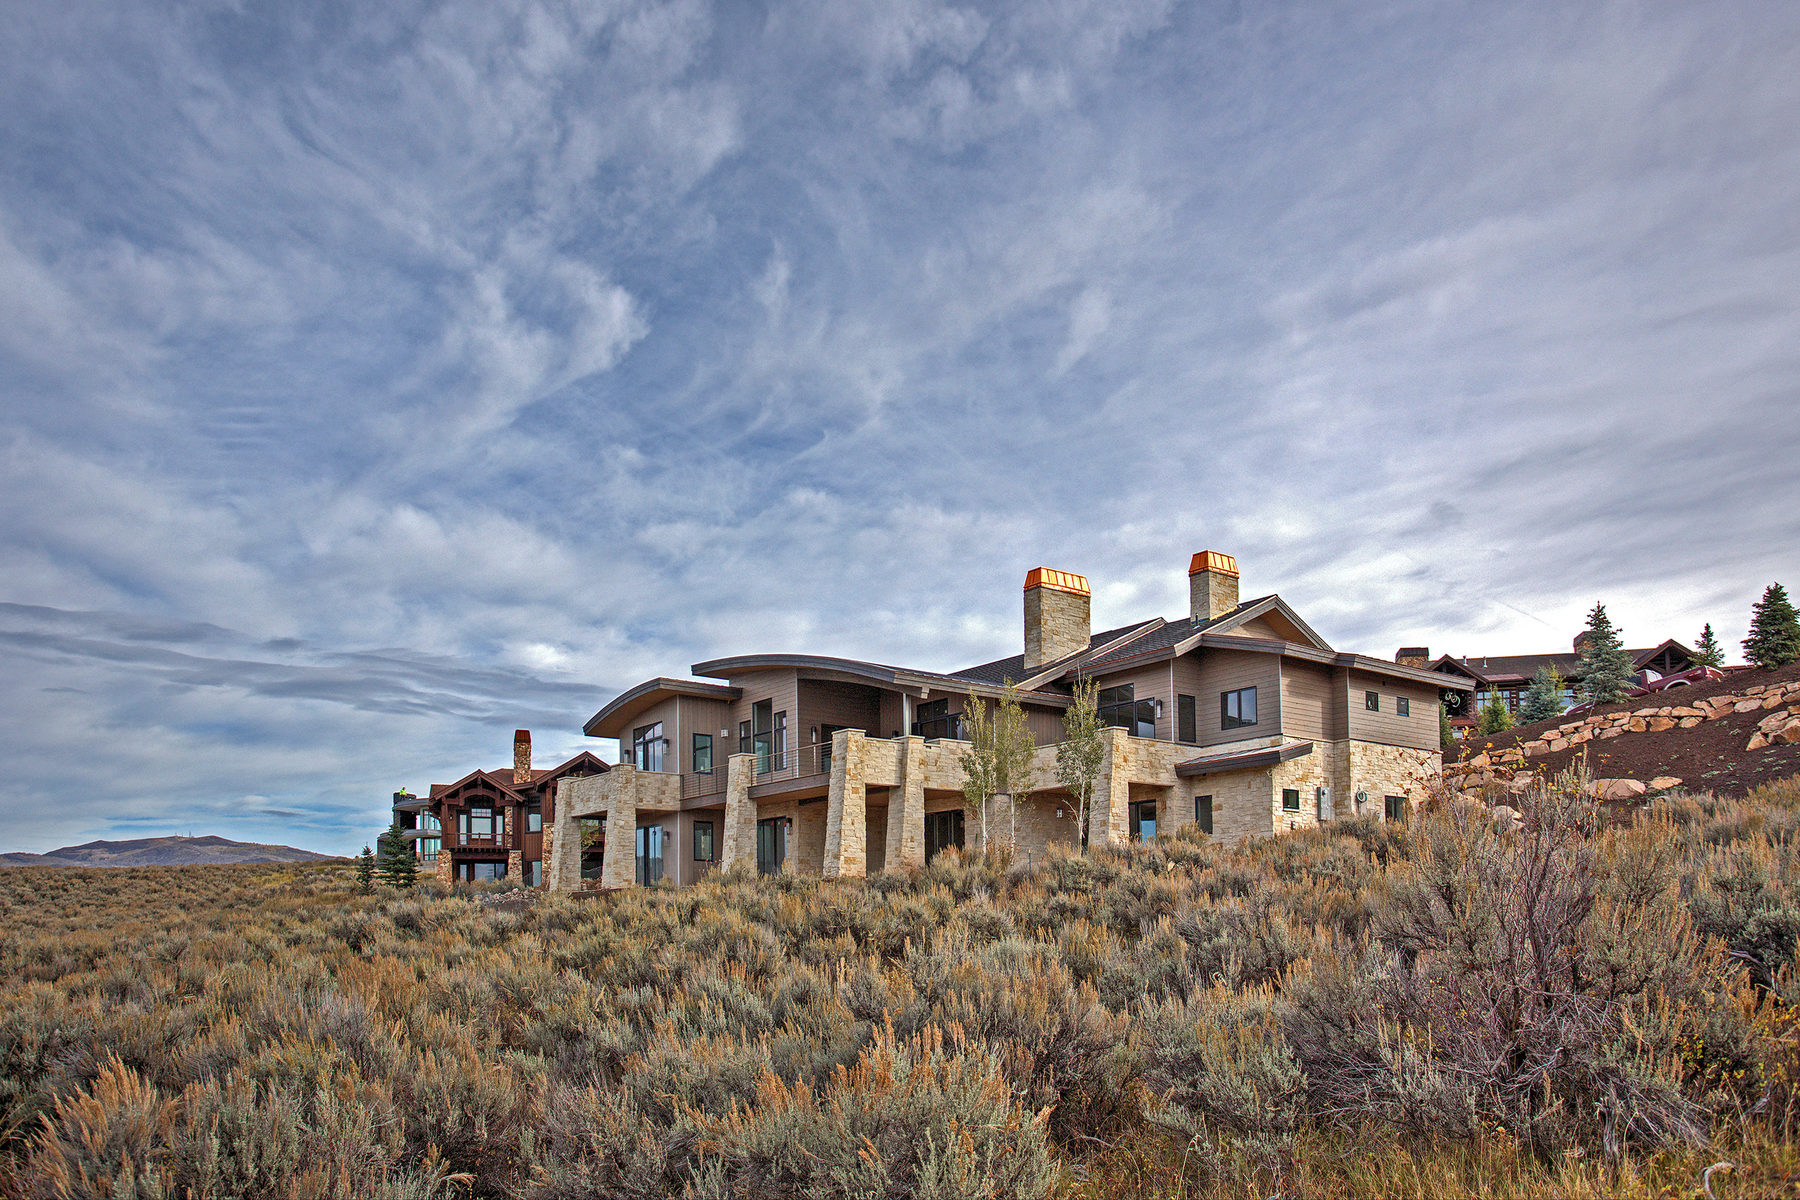 Moradia para Venda às Mountain Modern - New Construction 7811 N West Hills Trl Park City, Utah 84098 Estados Unidos